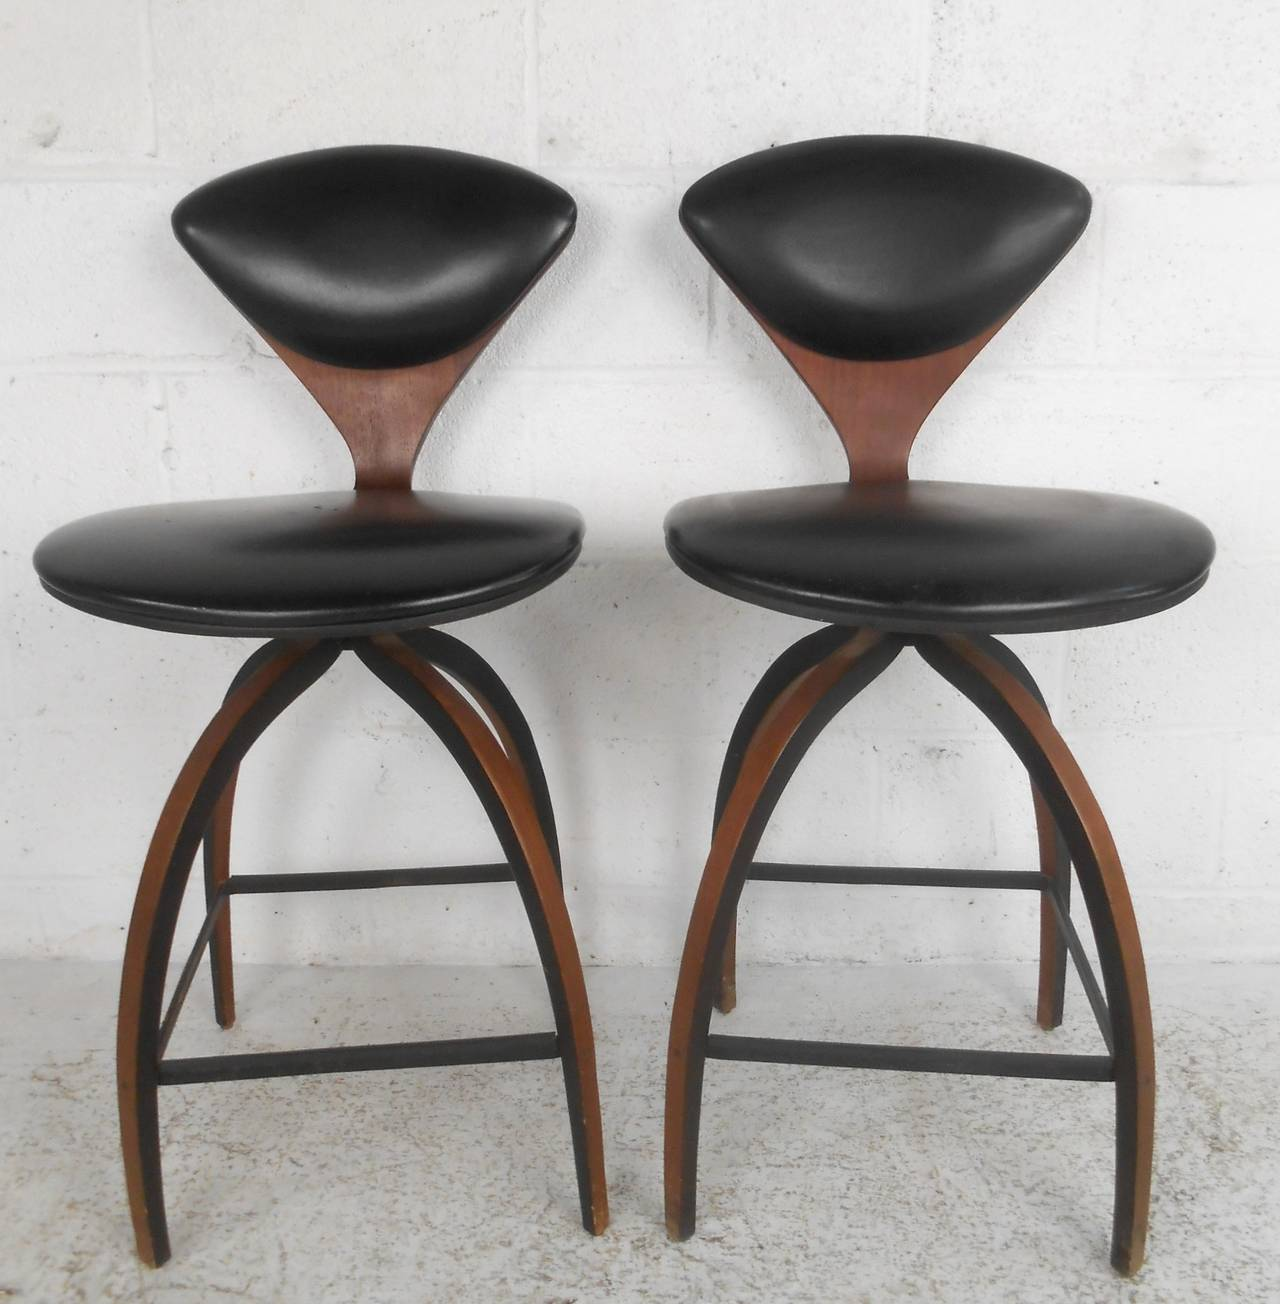 Pair Of Mid Century Modern Plycraft Bar Stools By Norman Cherner 2